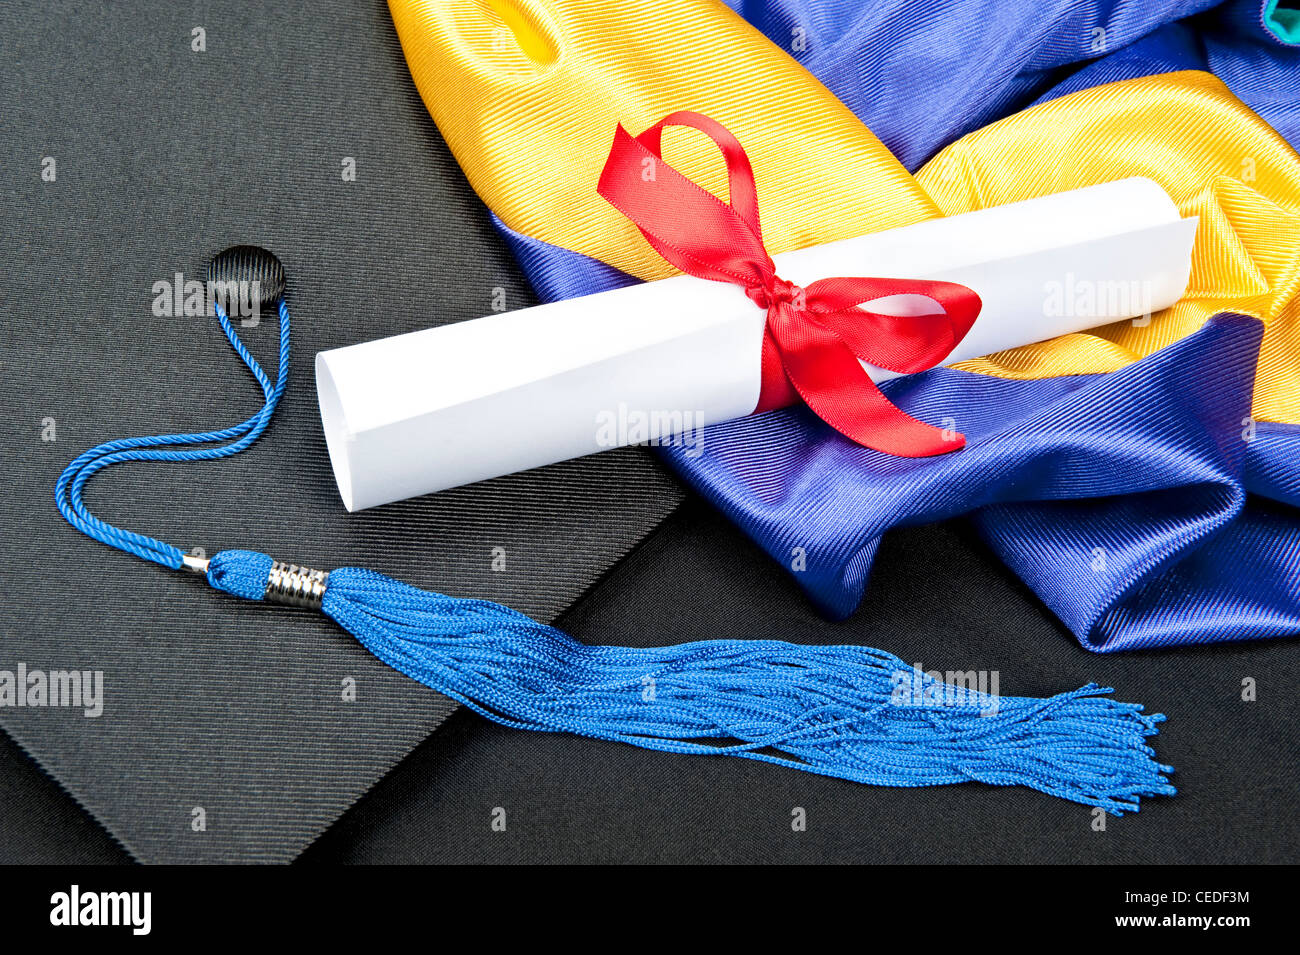 A graduation setting with cap,tassel, gown, hood and diploma. - Stock Image